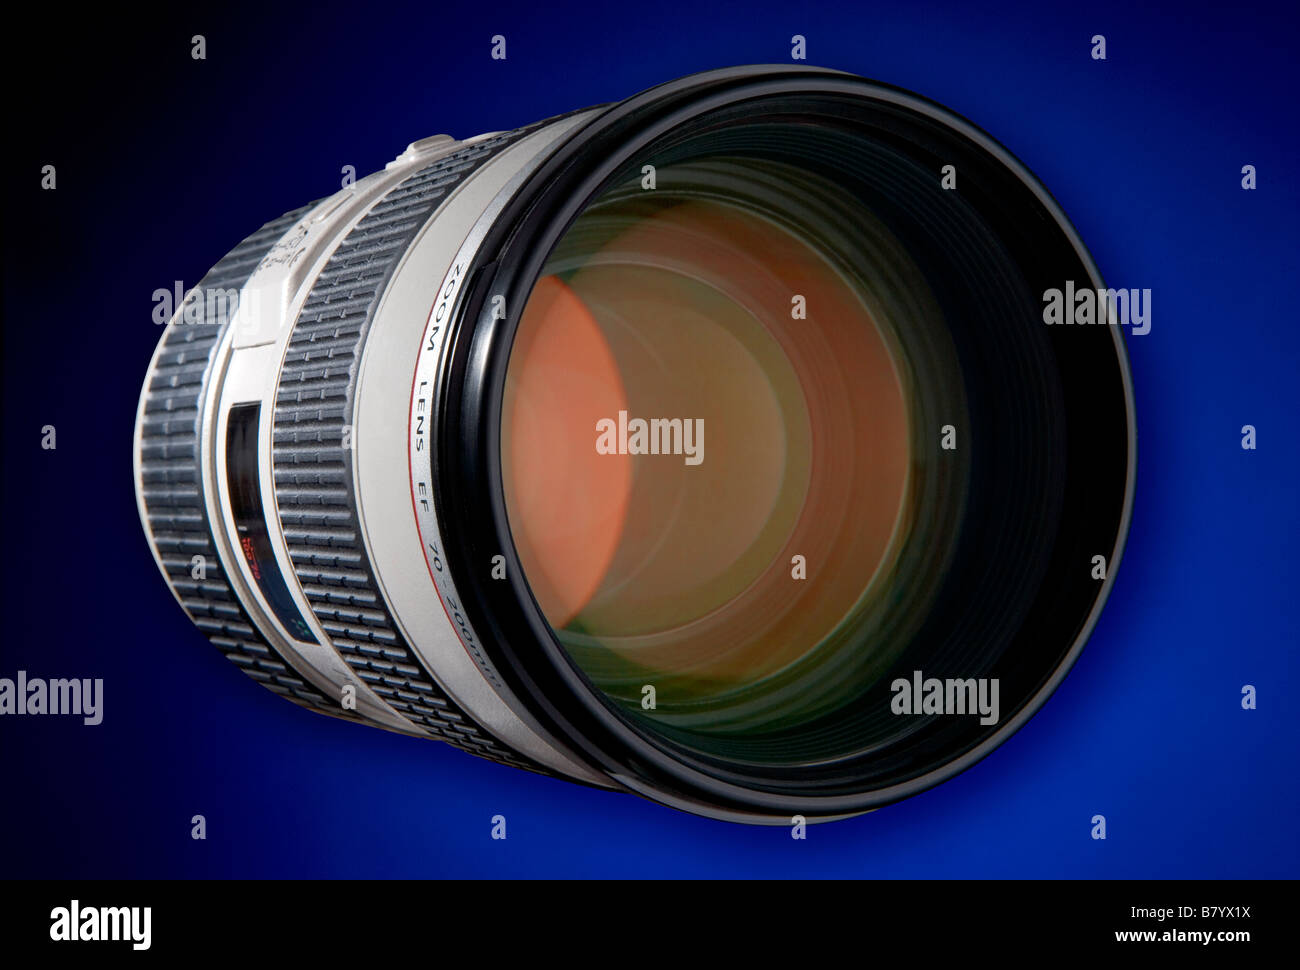 A white body lens with ruby red coatings on the front elements This one os an 80 200 zoom from an SLR digital camera - Stock Image